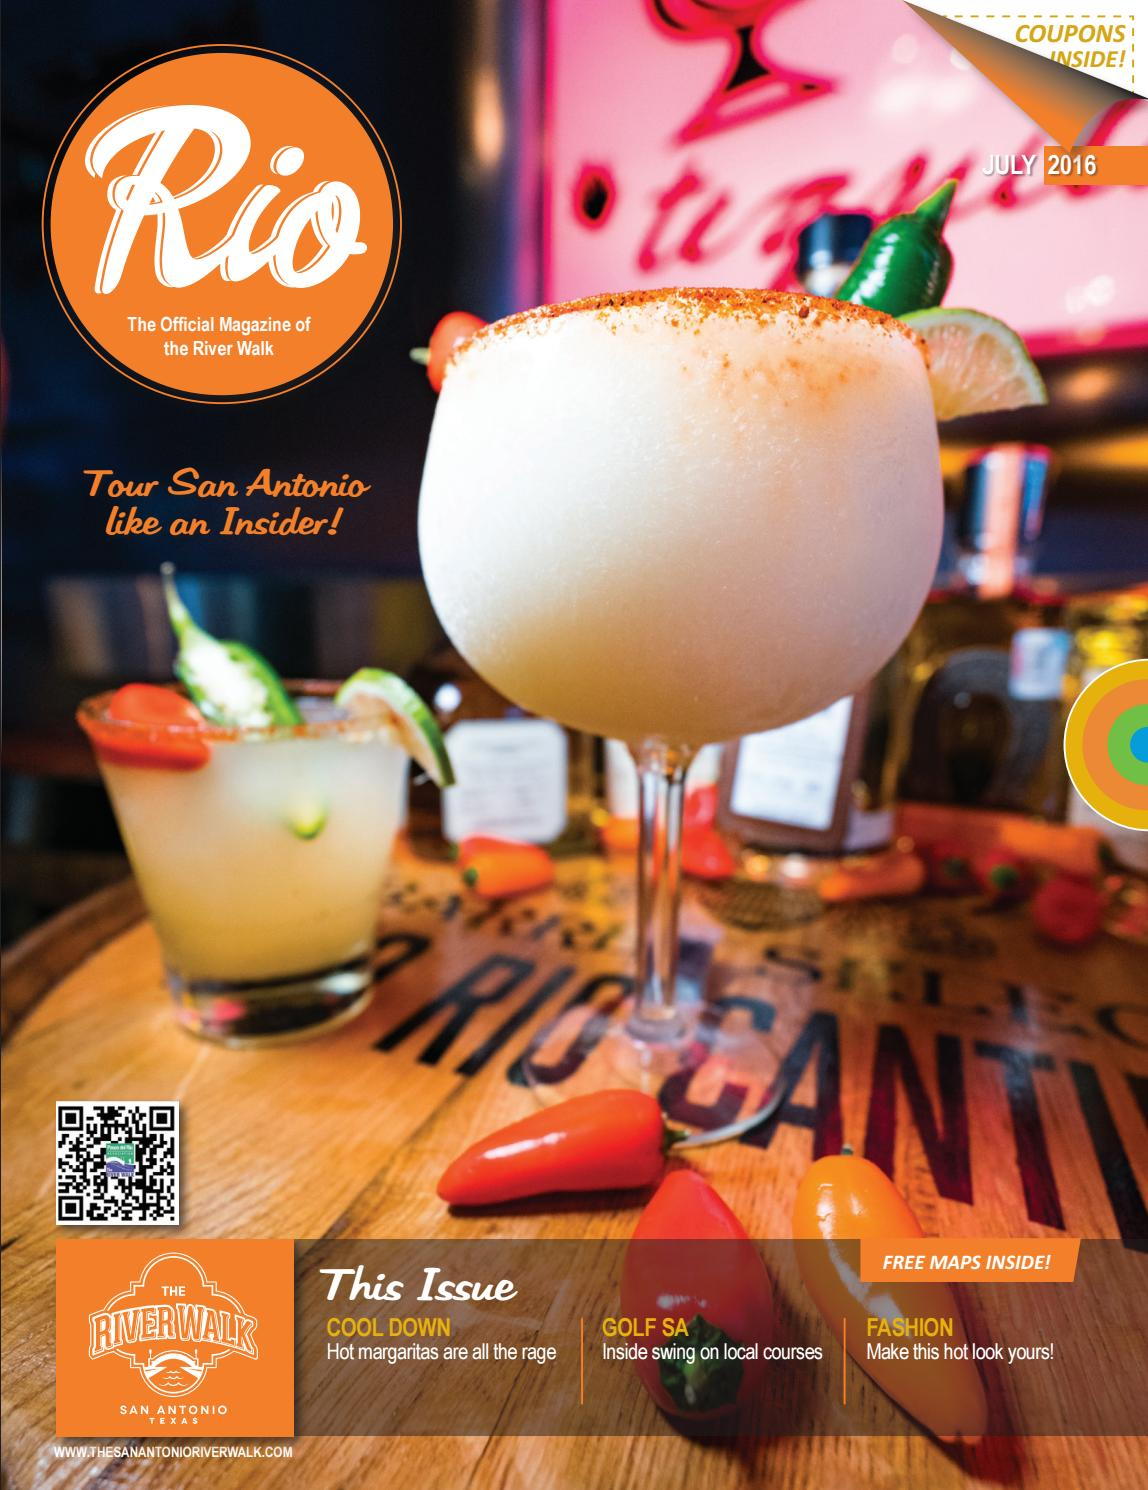 rio magazine july 2016 by traveling blender - issuu